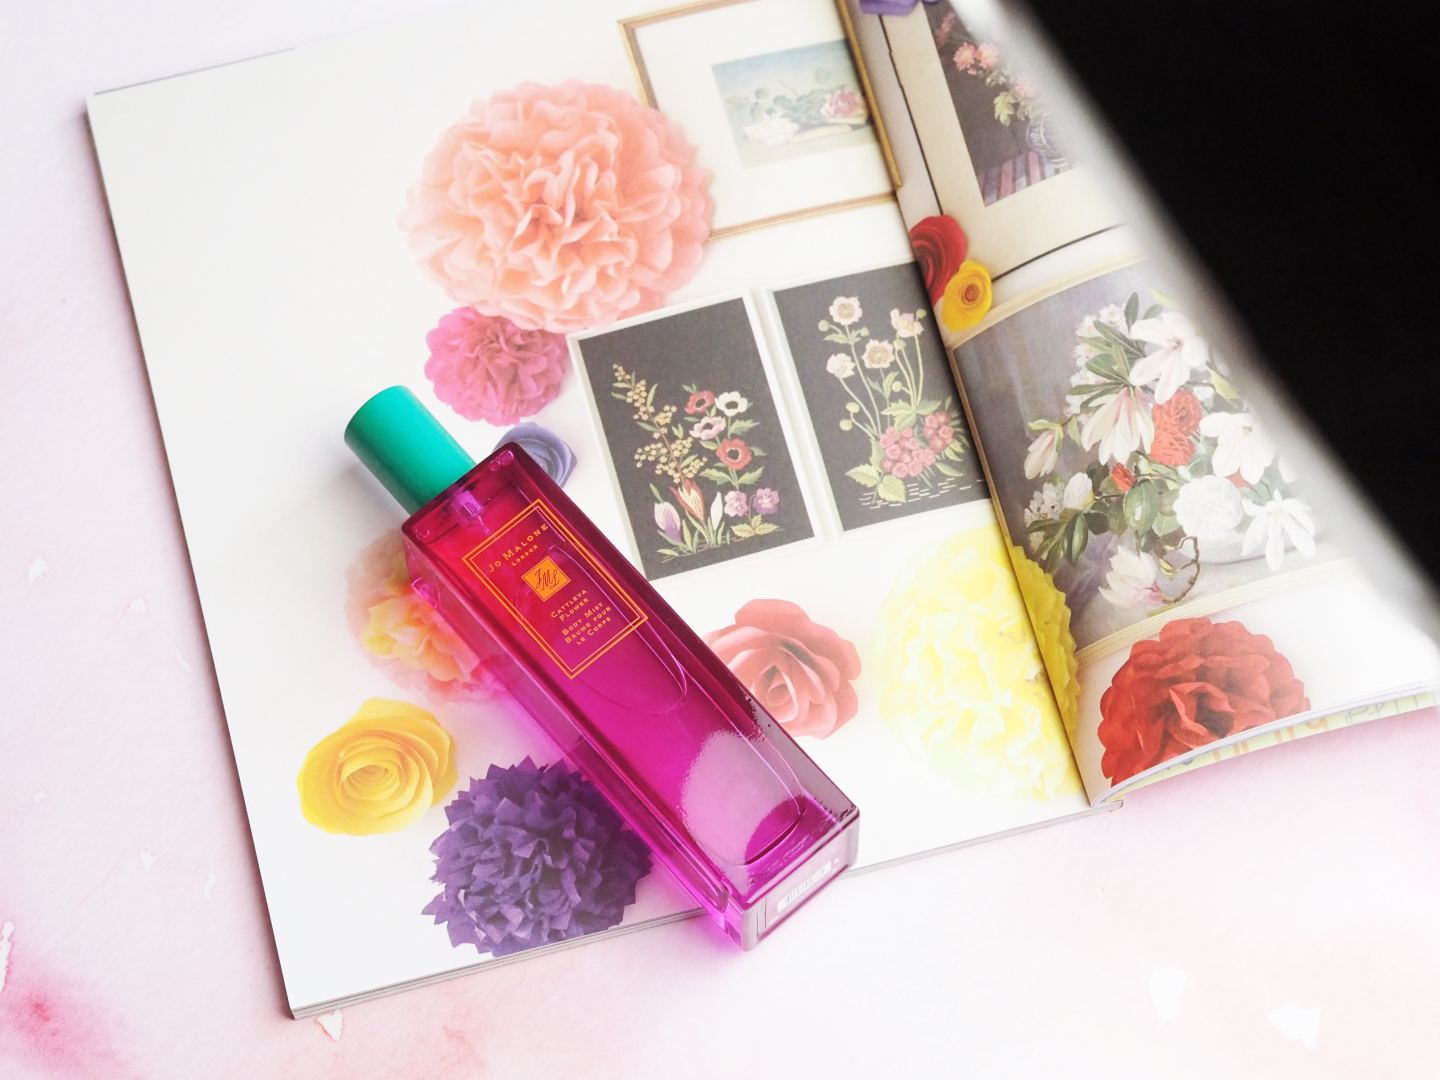 Perfume Jo Malone London Hot Blossoms Collection Fashion For Lunch